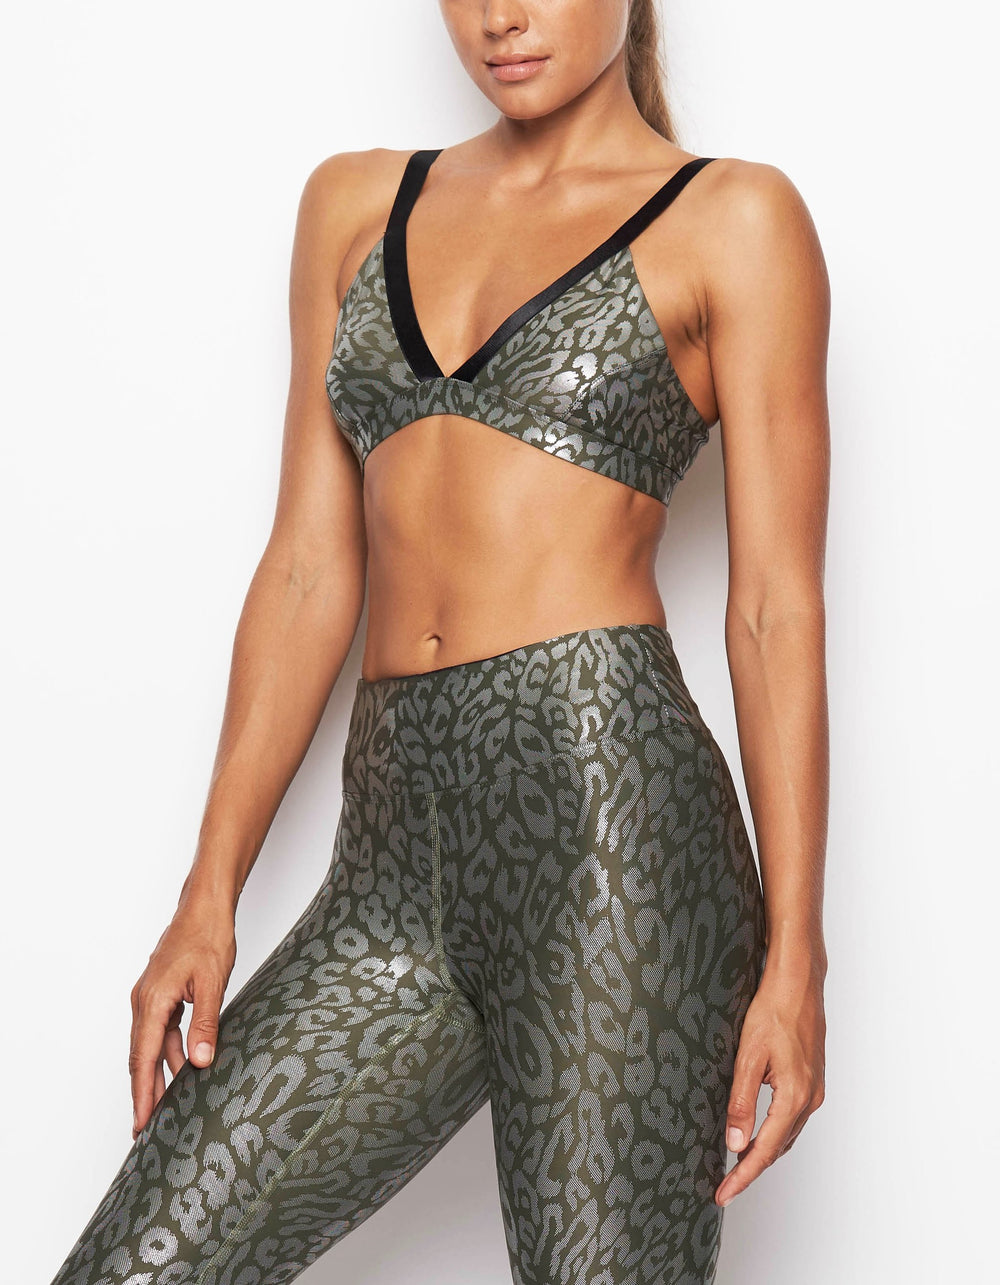 One47 Bra in Army Cheetah